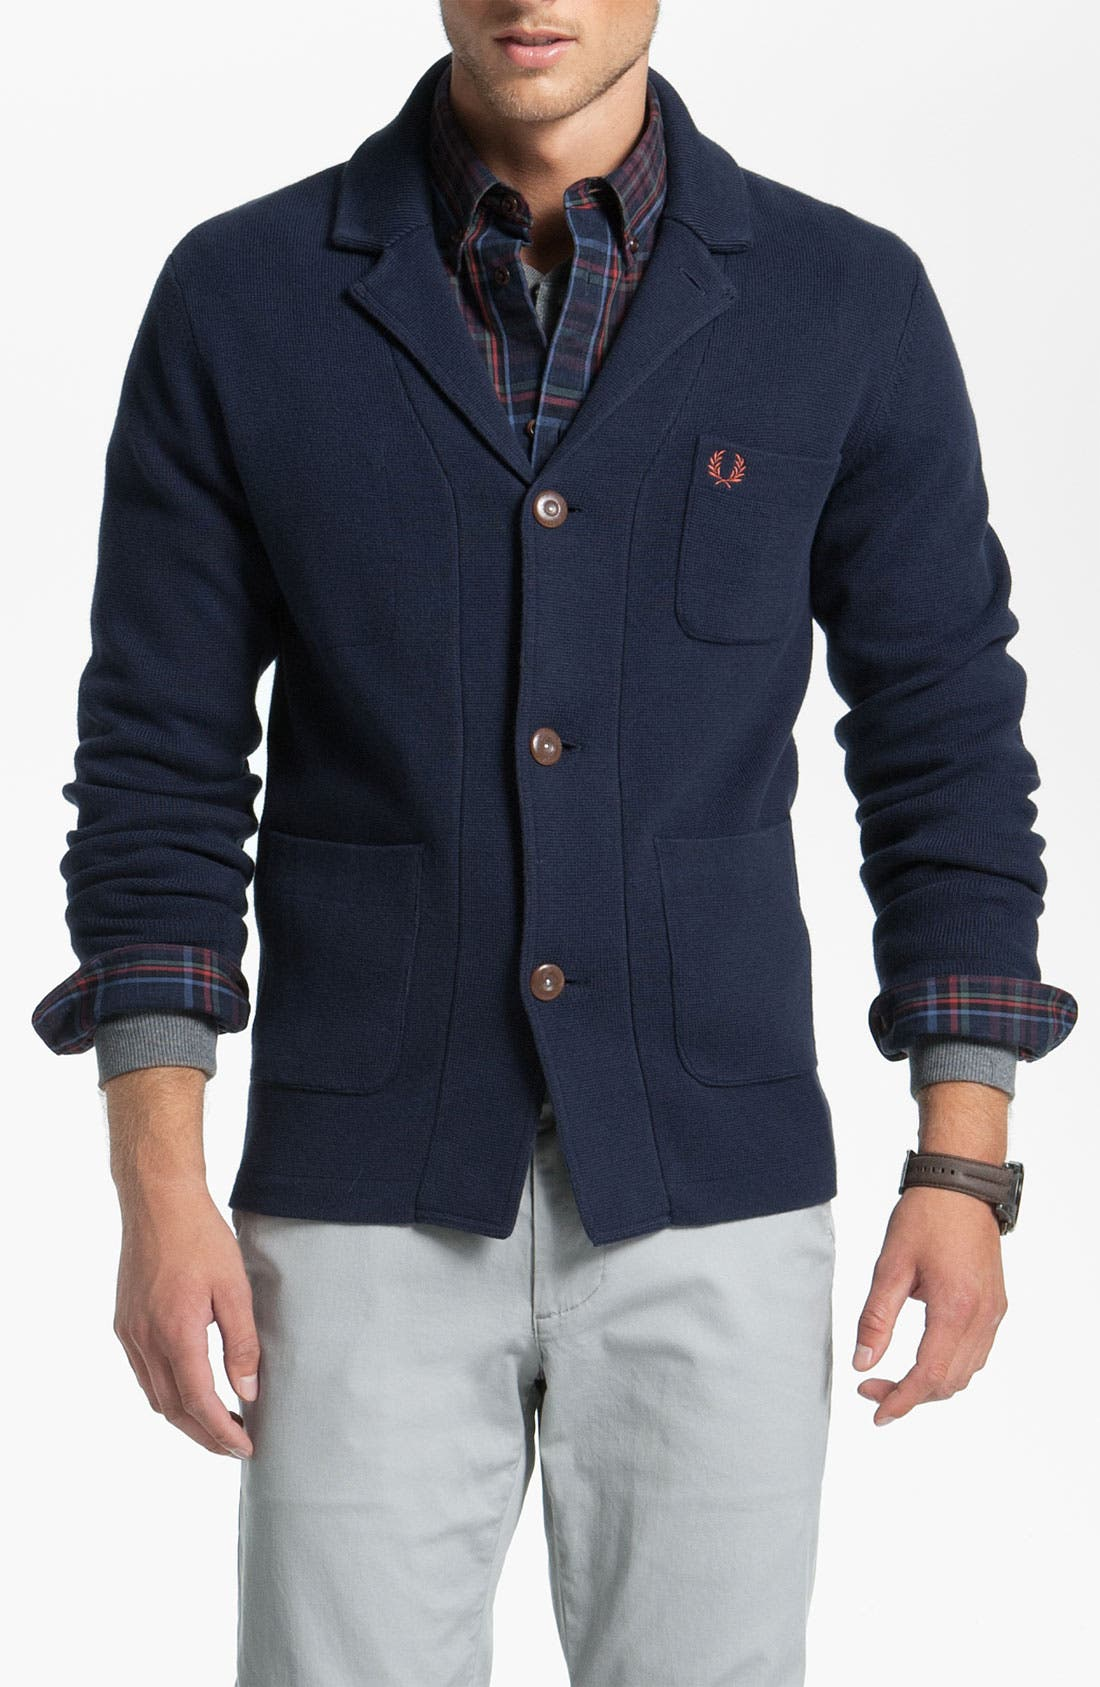 Main Image - Fred Perry Jacket Cardigan